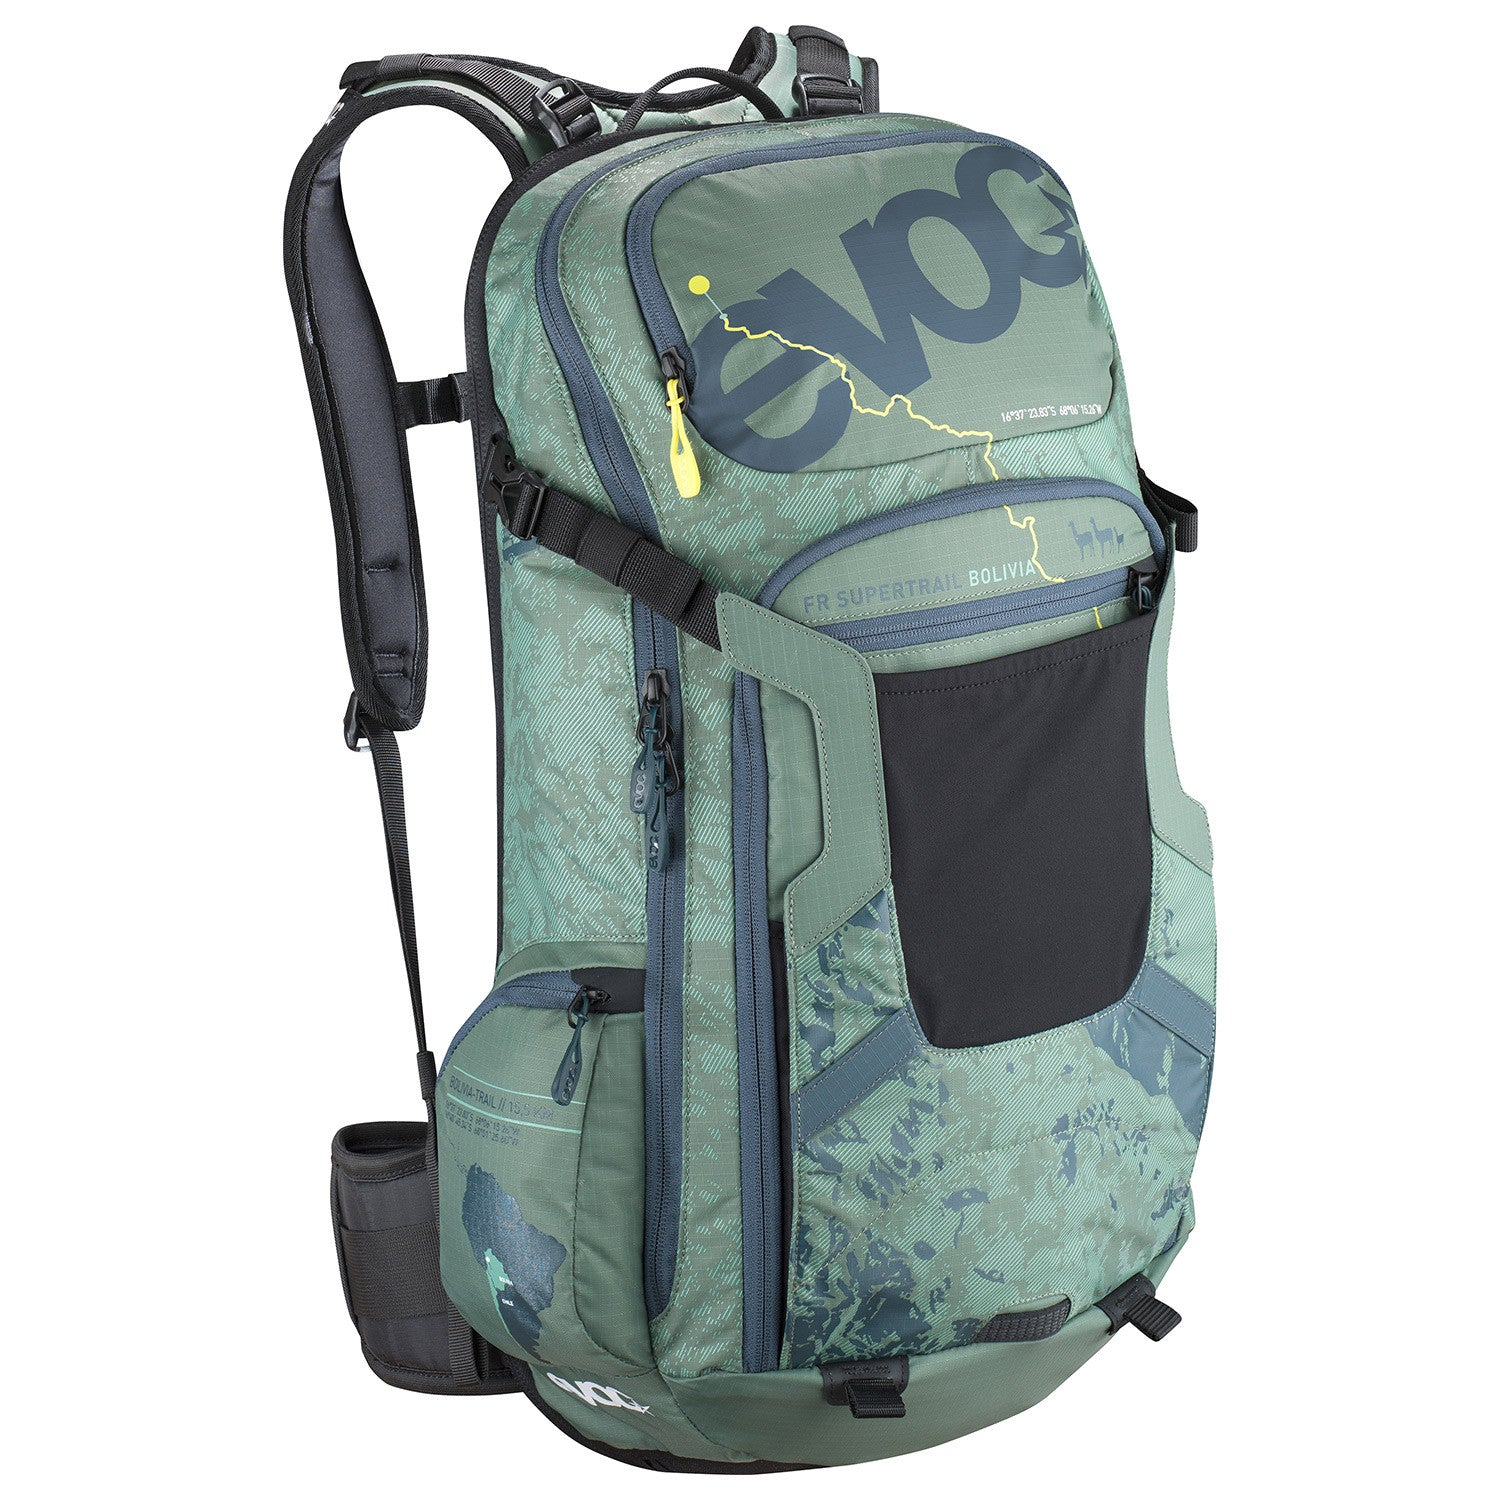 FR Supertrail BOLIVIA 20l - Olive by EVOC